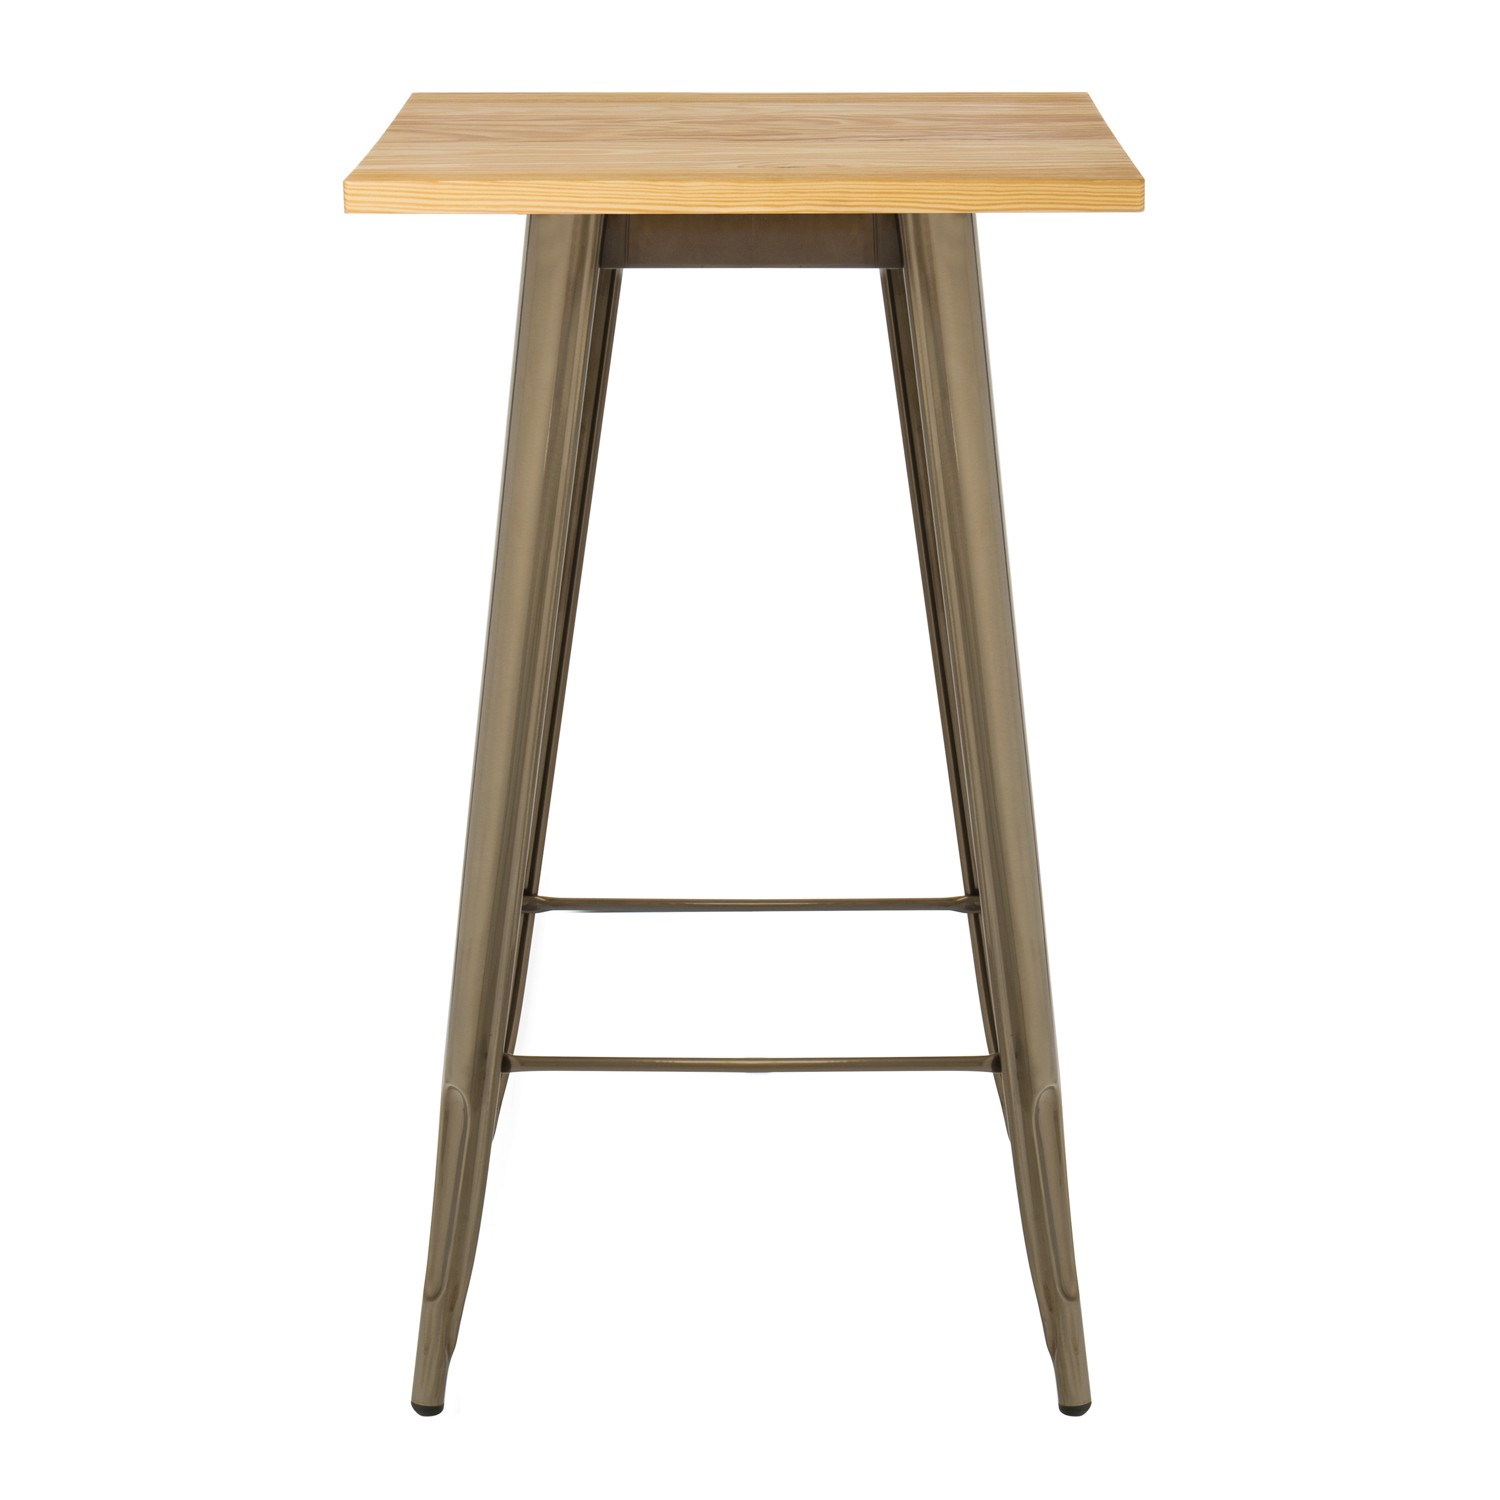 Table haute lix bross e en bois sklum france - Table haute en bois ...